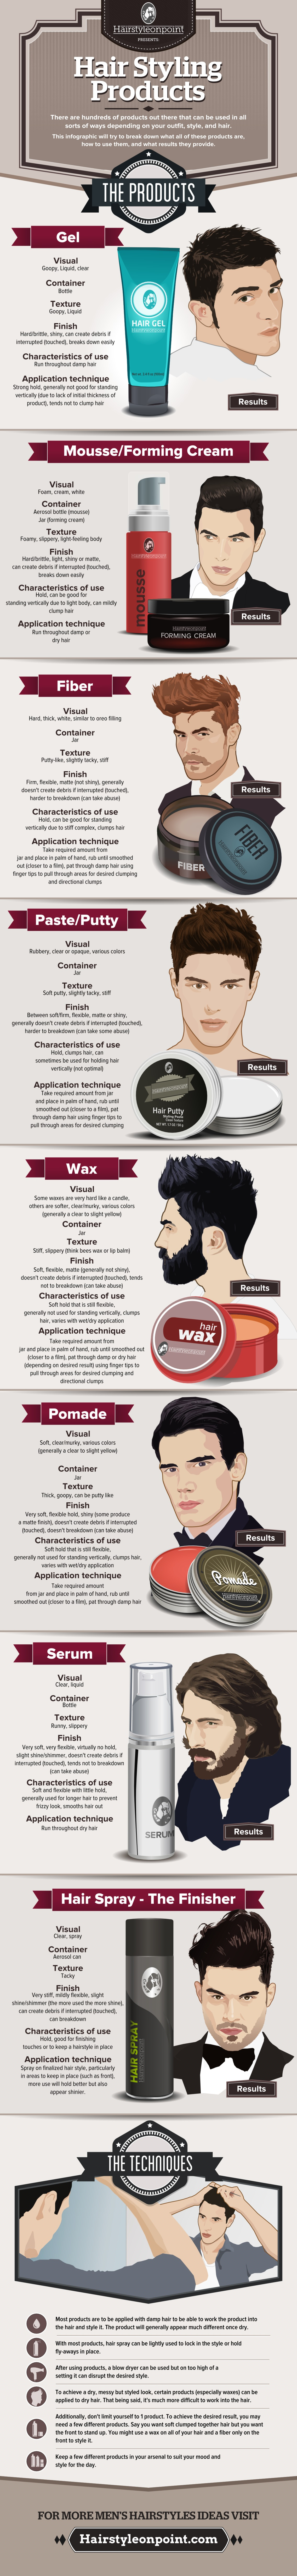 How To Brush Your Hair Correctly Ultimate Guide To Men S Hair Hairbrushes And Styling Products Hair Brush Hair Brush Guide Mens Hairstyles